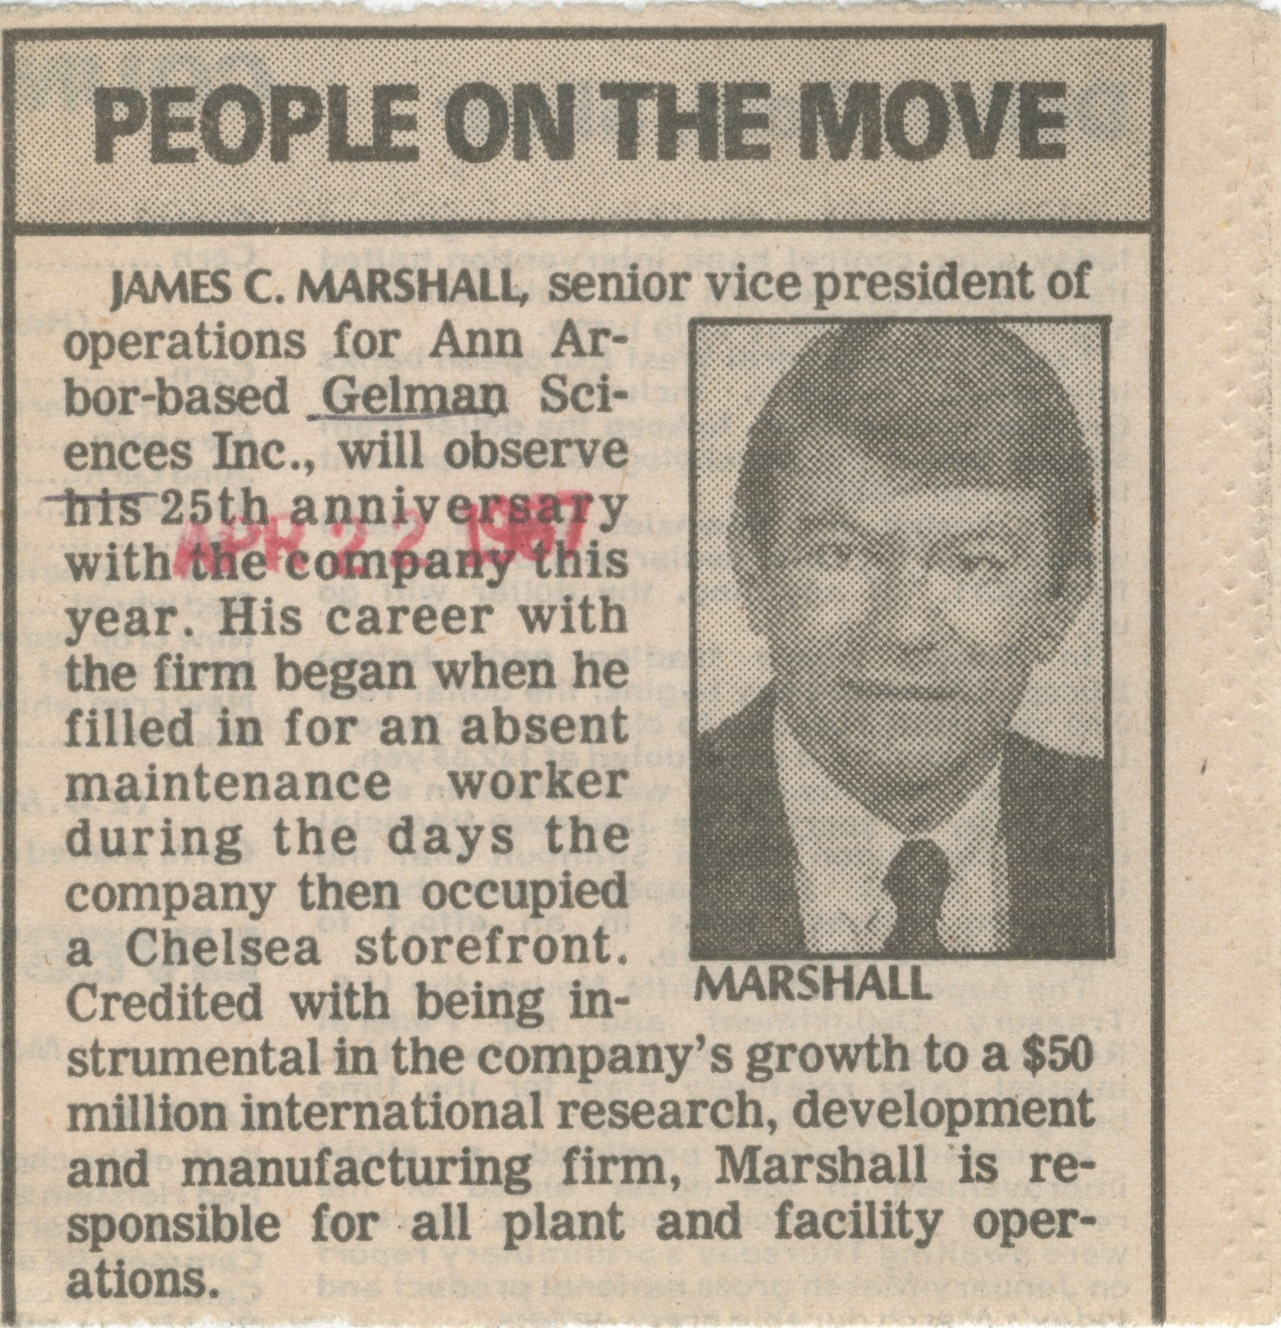 James C. Marshall, Senior Vice President of Operations  image